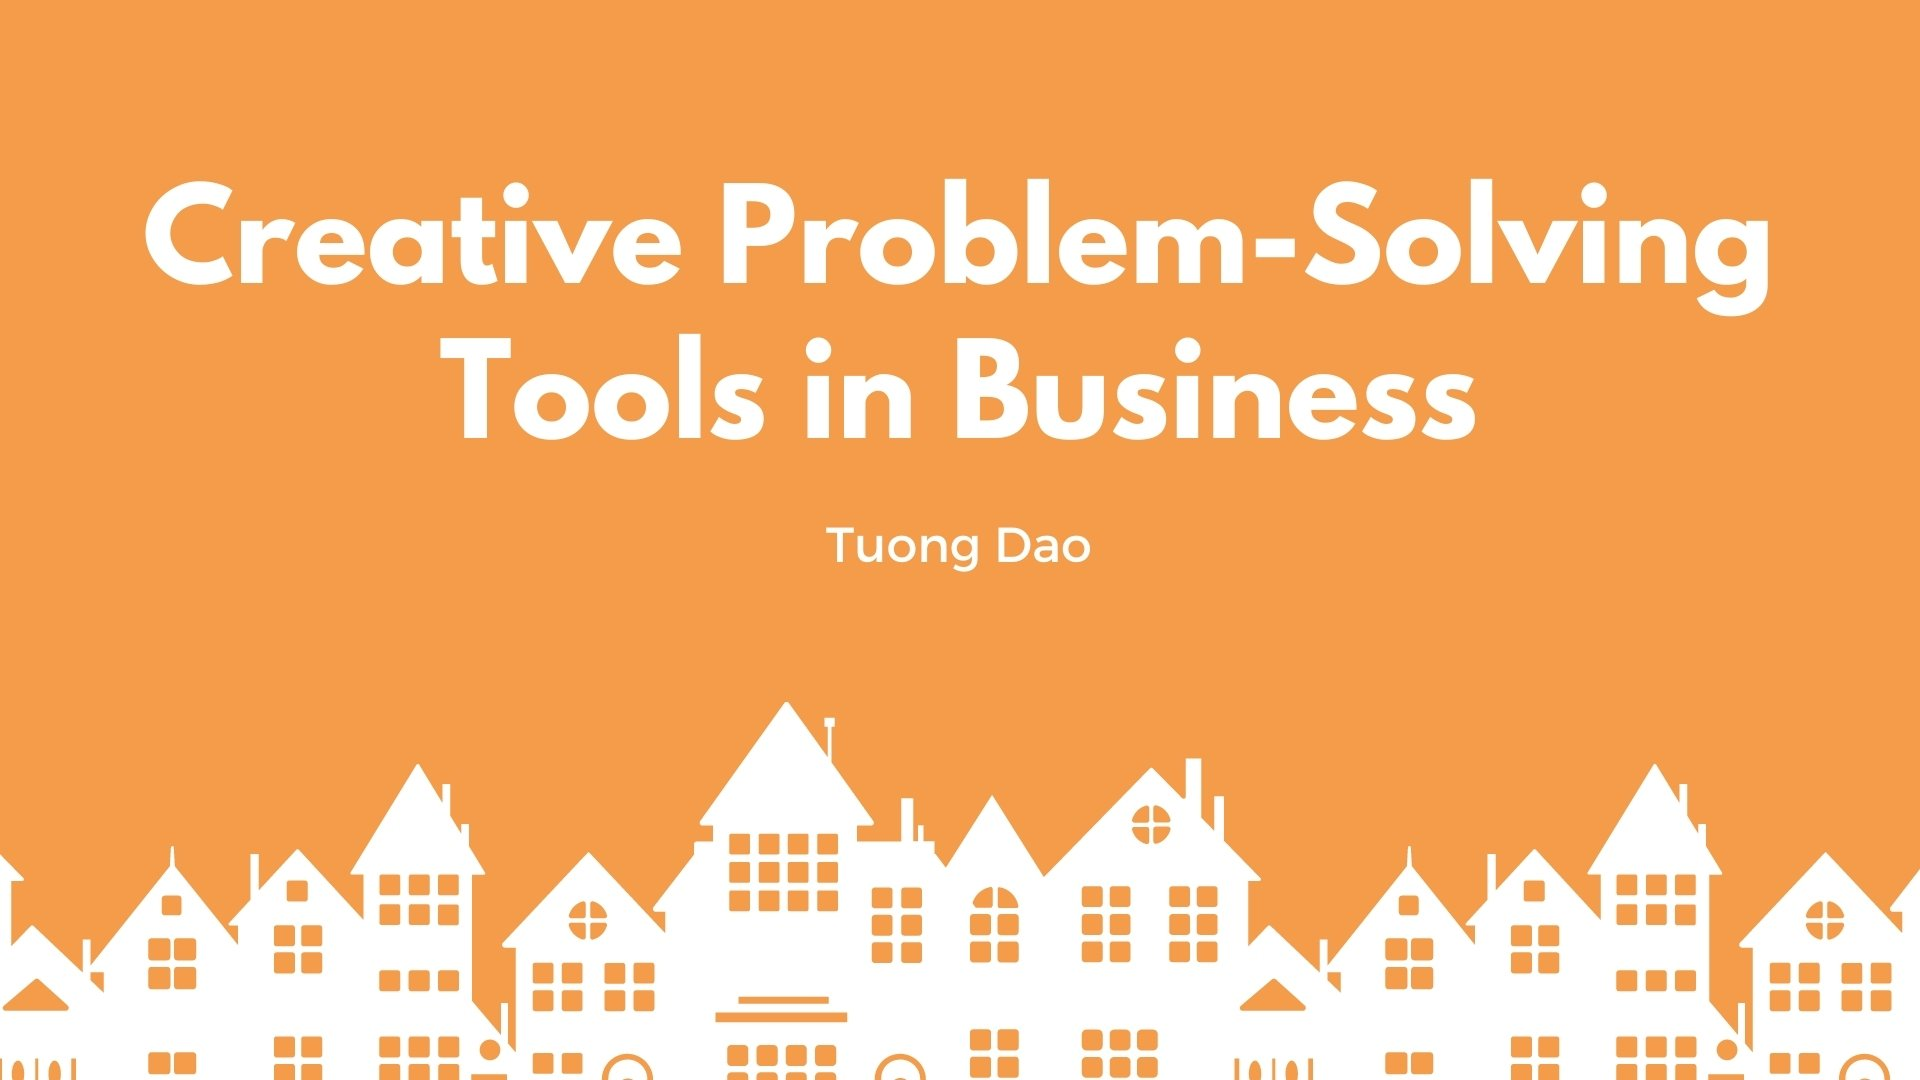 Creative Problem Solving Tools and Examples in Business Featured Image